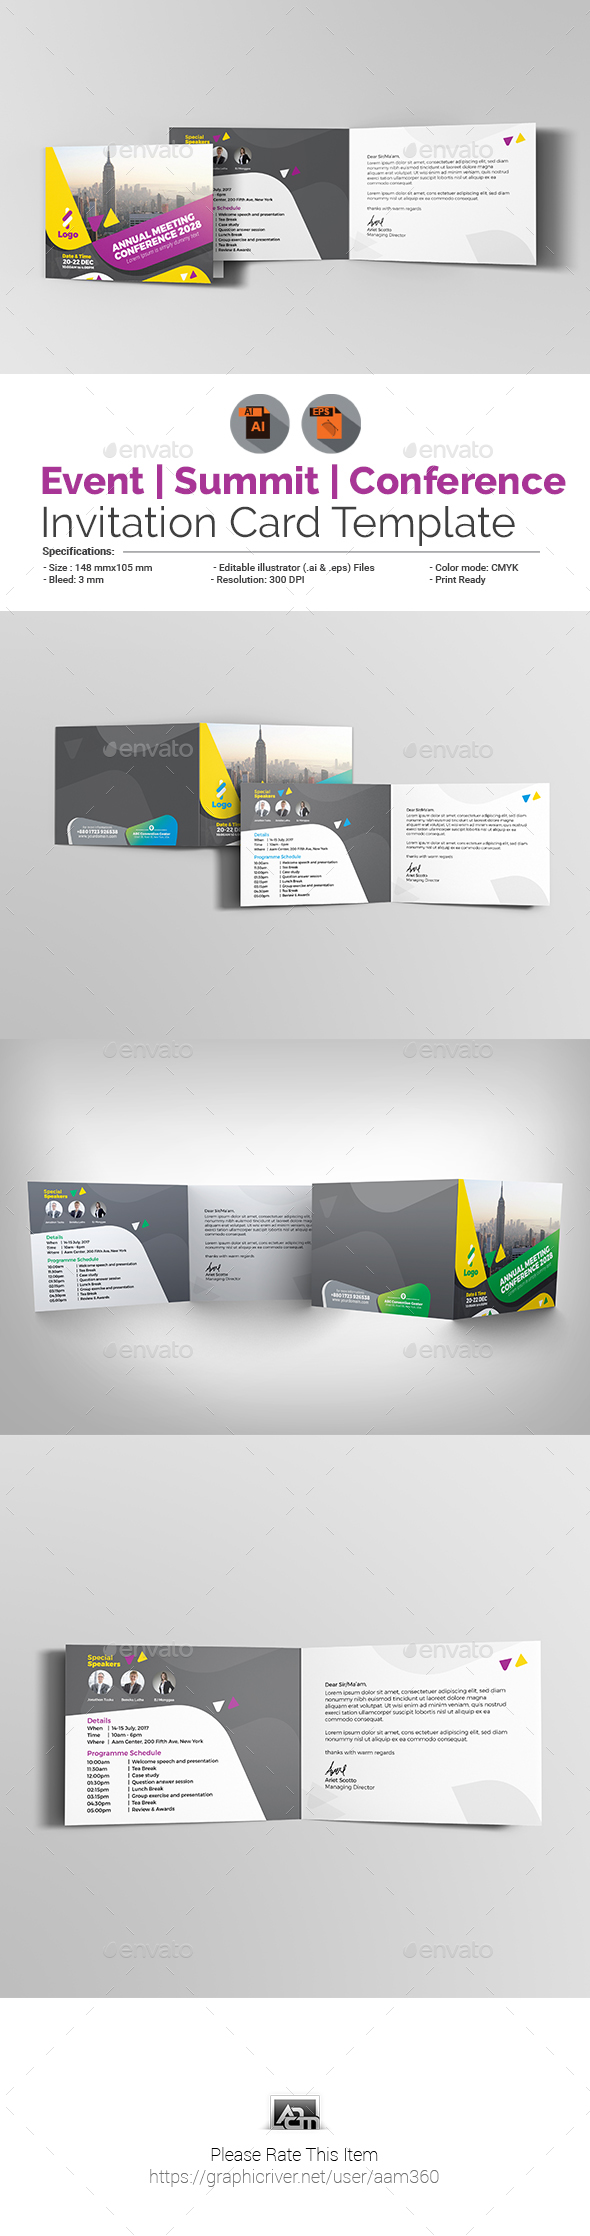 Annual Meeting Graphics Designs Templates From Graphicriver